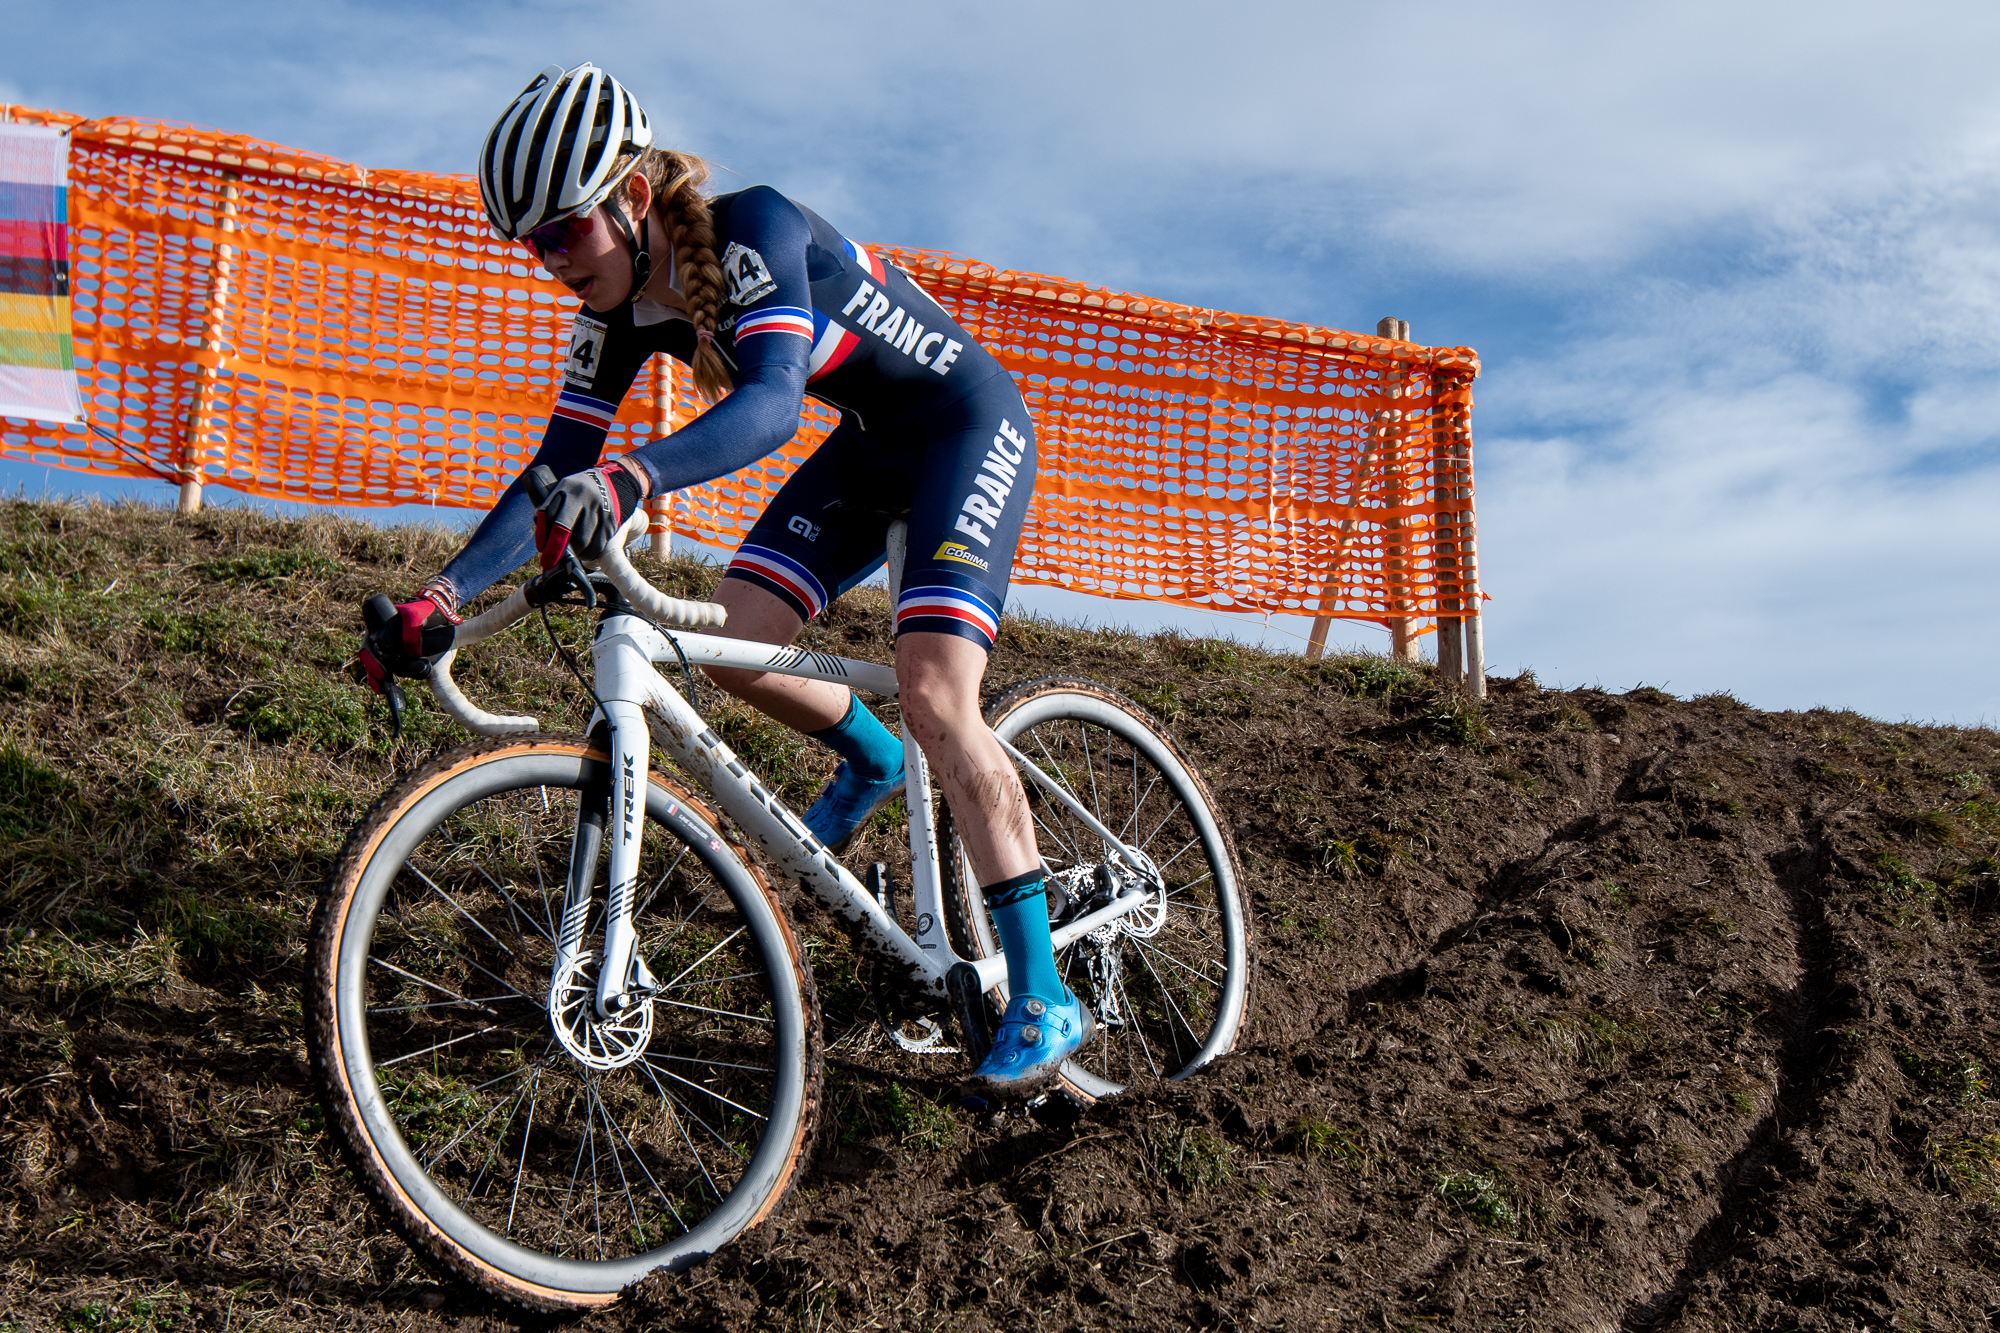 Line Burquier in a rut on an off-camber descent at the UCI Cyclocross World Championships